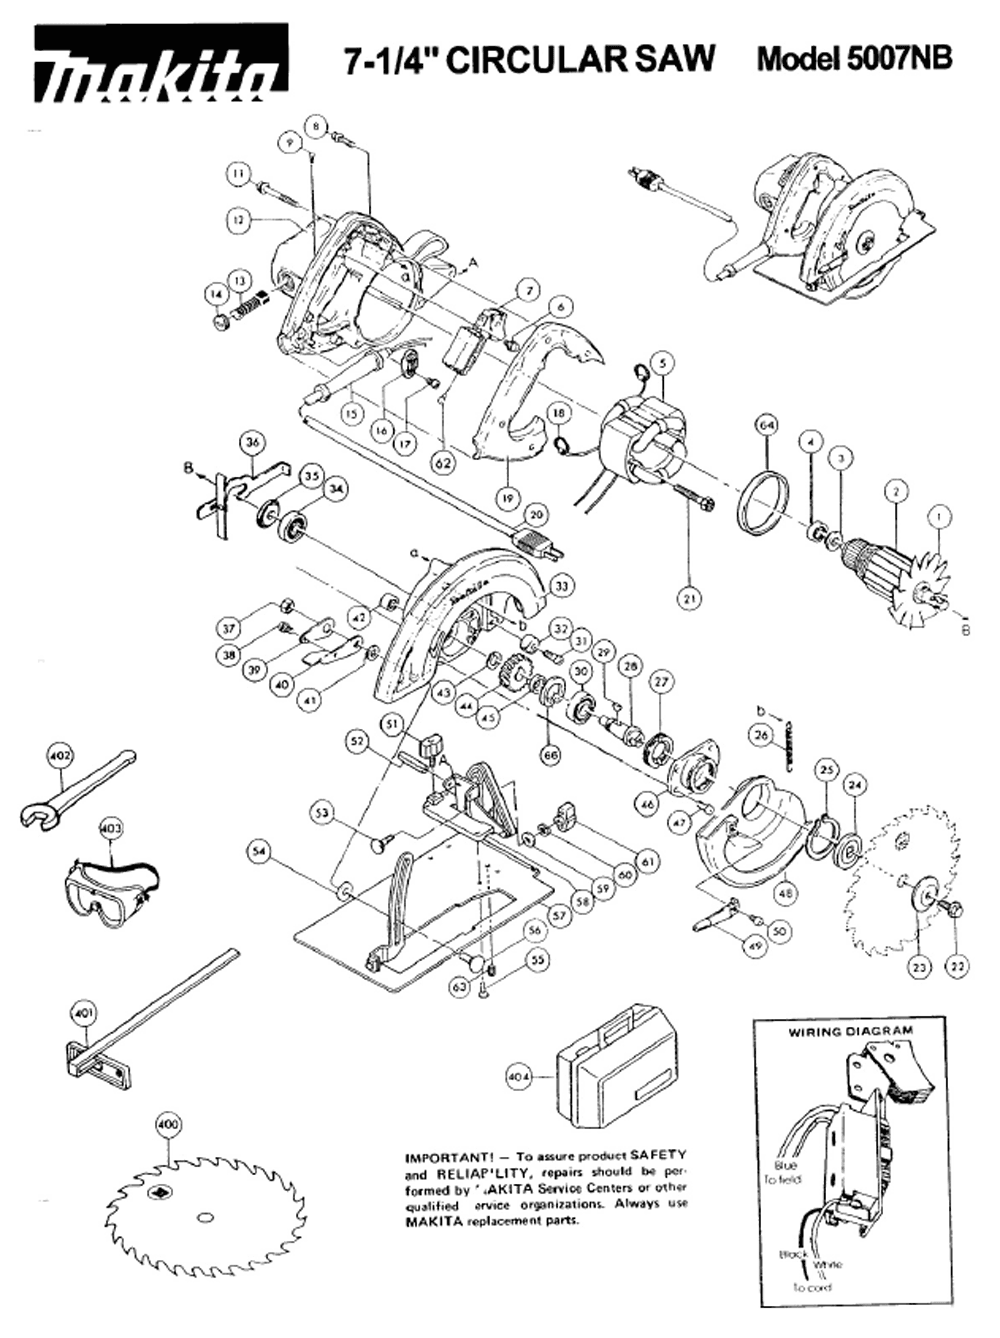 Electrical wiring diagram 1972 buick skylark with makita blower wiring diagram on wiring diagram 1927 buick